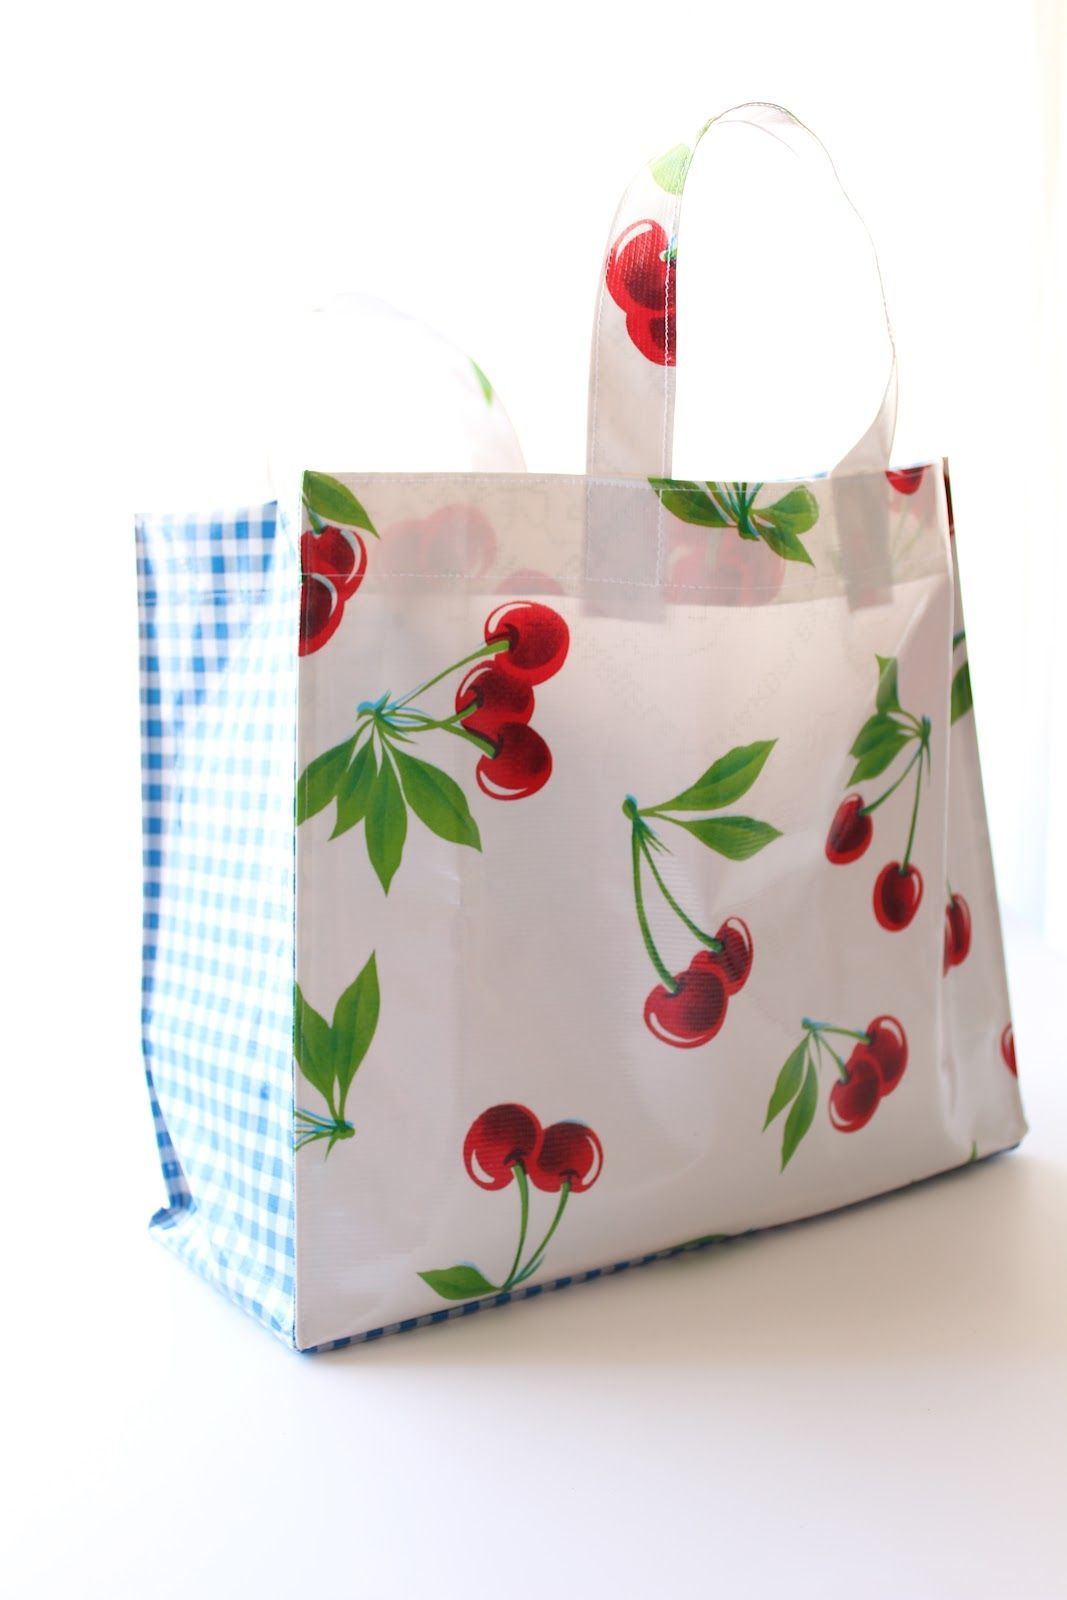 Oilcloth Shopping Bag Miss Mary Sewing Classes Bags